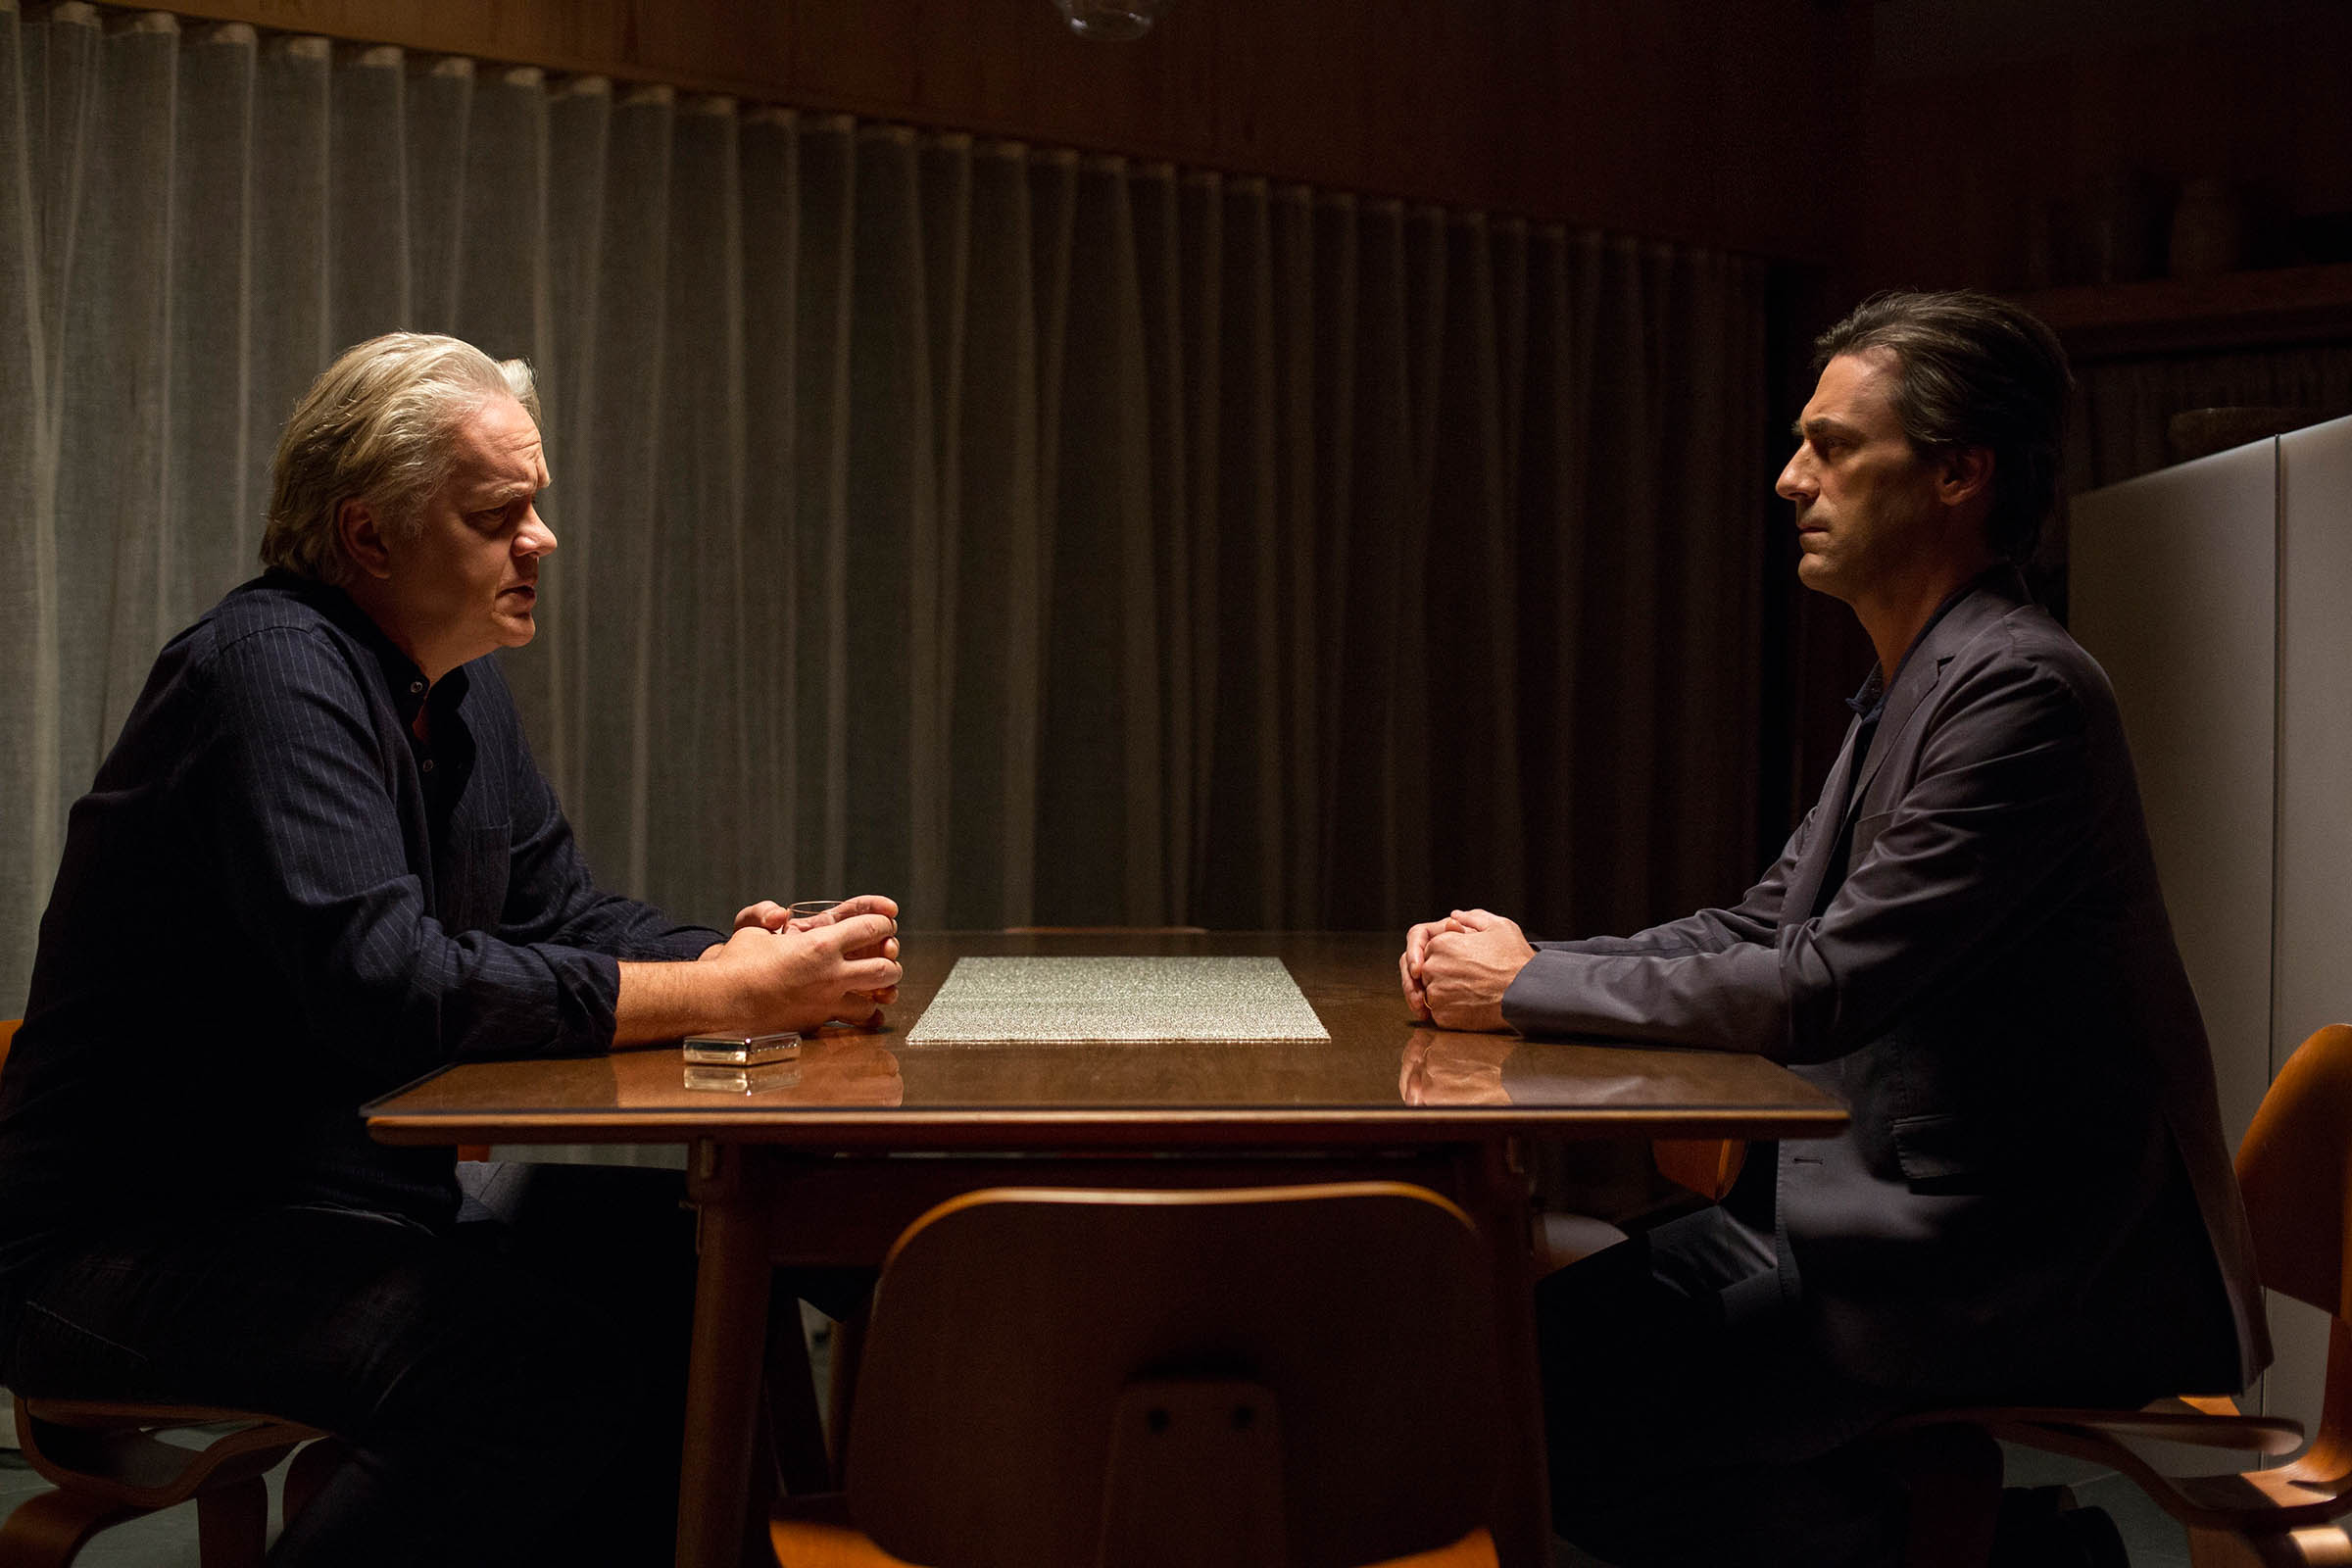 Tim Robbins and Jon Hamm appear in Marjorie Prime by Michael Almereyda, an official selection of the Premieres program at the 2017 Sundance Film Festival. Courtesy of Sundance Institute | photo by Jason Robinette.